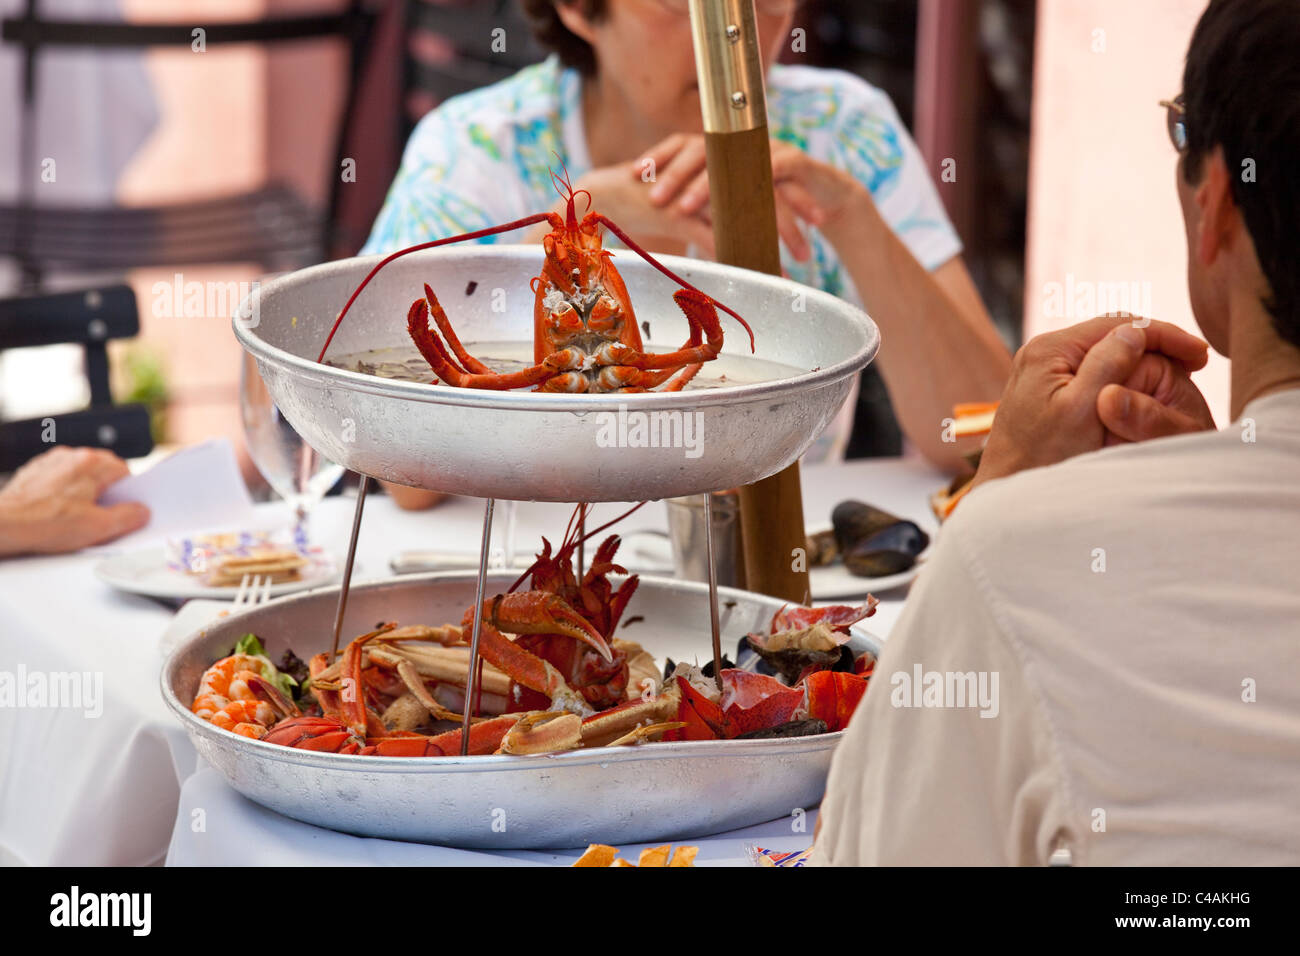 Seafood Restaurant Georgia Stock Photos & Seafood Restaurant